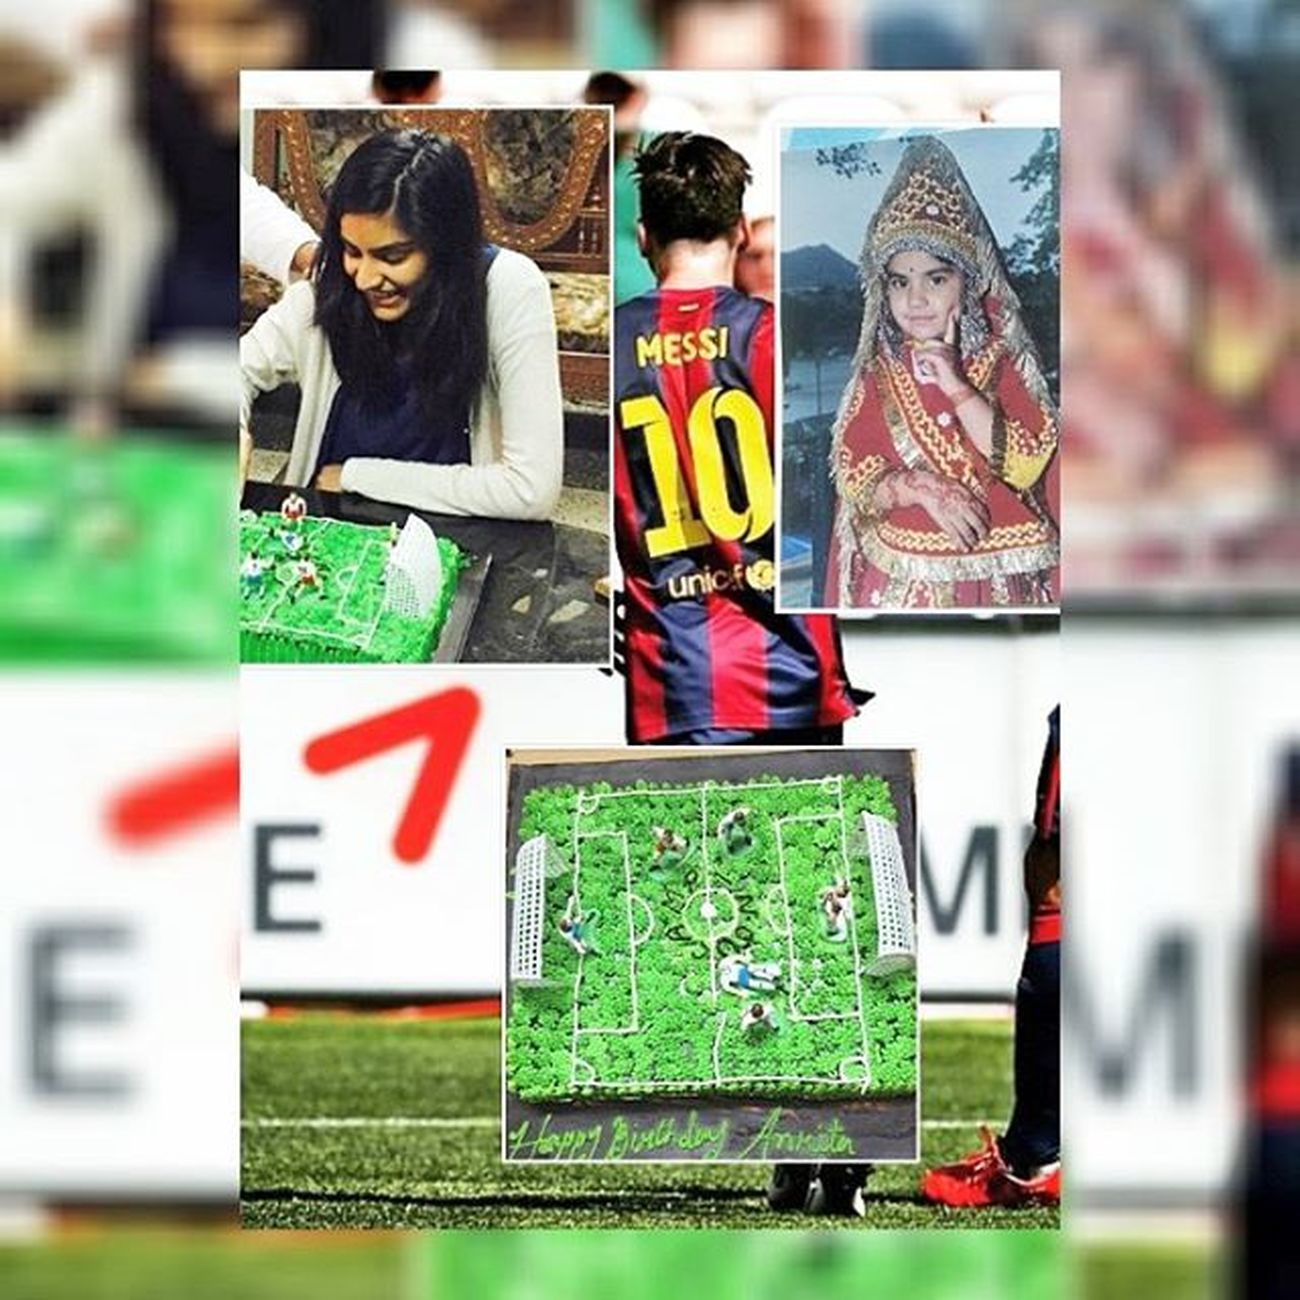 Wish u very overjoyed and wonderful nineteenth ! (12 days) b lated happy beday Sista ! A ton apologies for slipping it off from my mind Love u soo much ❤❤ Anki You r true hail high Barcelona Fan ✌🏻✌🏻😚😉 Blated 18Jan🎂